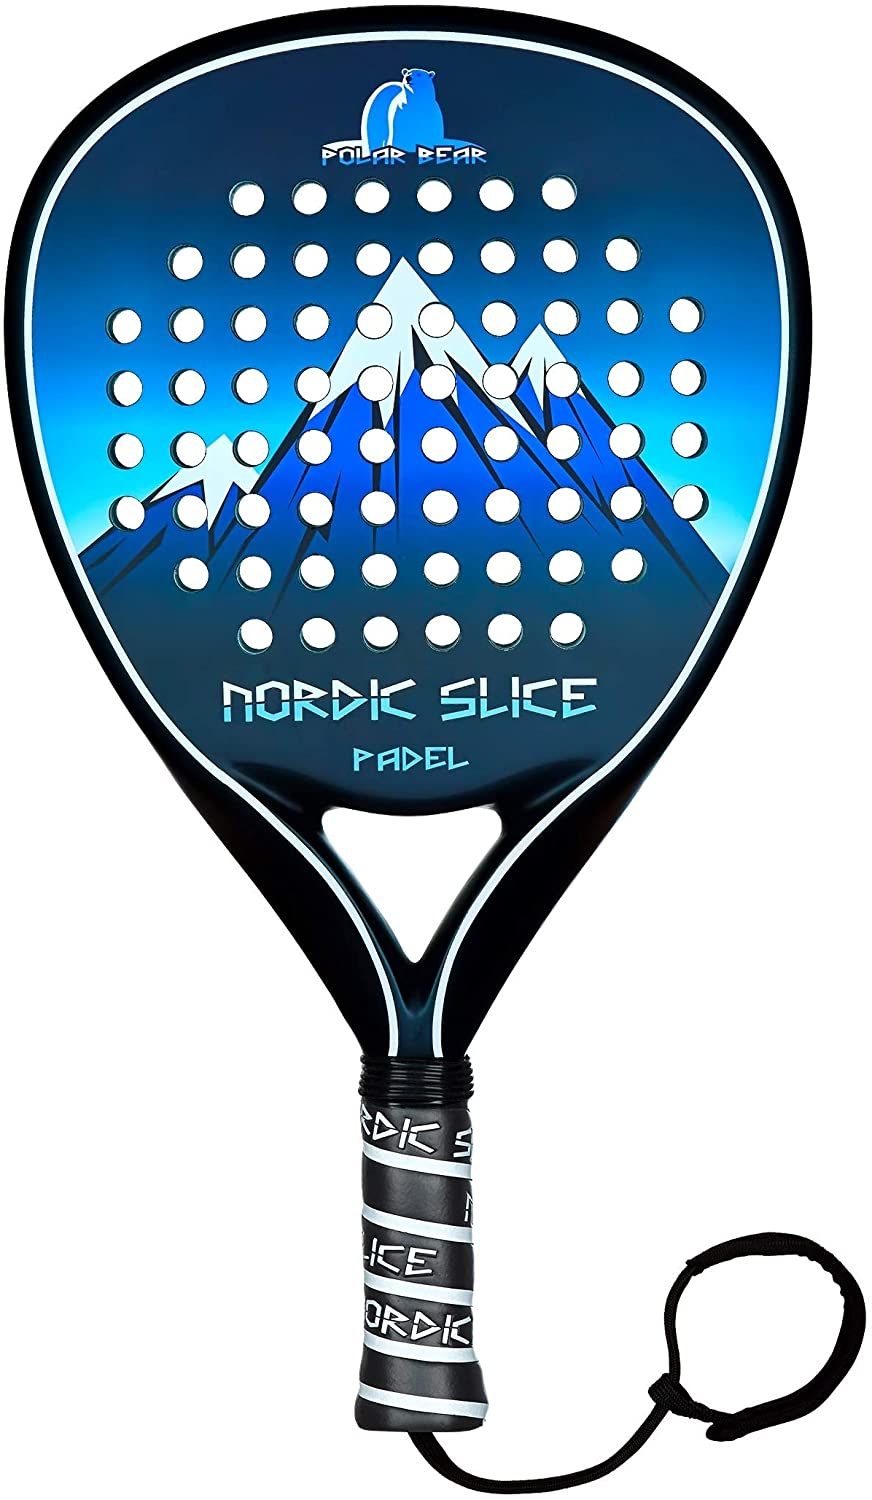 NORDIC SLICE Polar Bear Carbon Fiber Paddle Tennis Racket